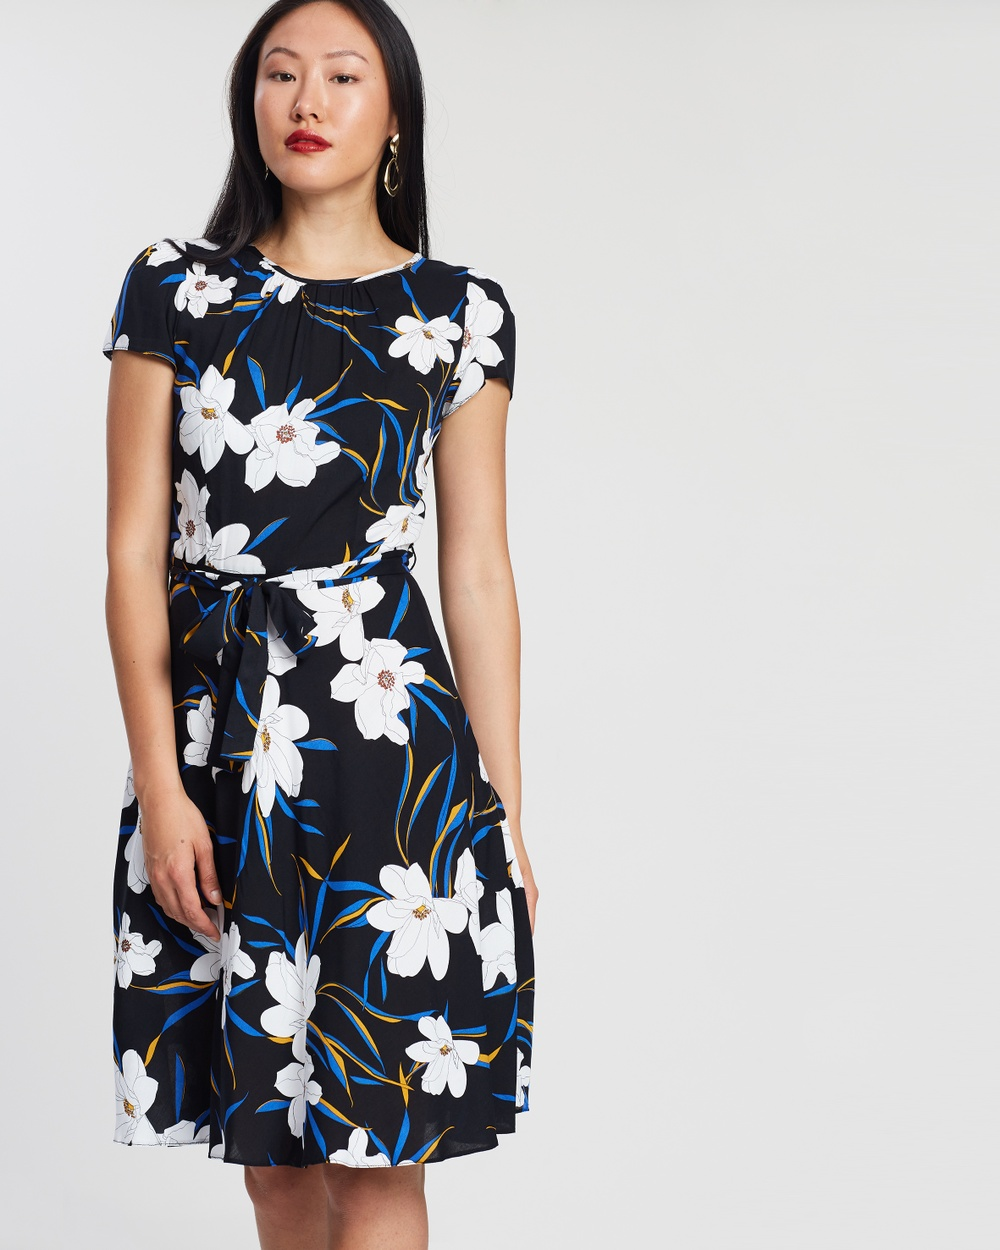 Billie & Blossom by Dorothy Perkins Black Bloom Skater Dress